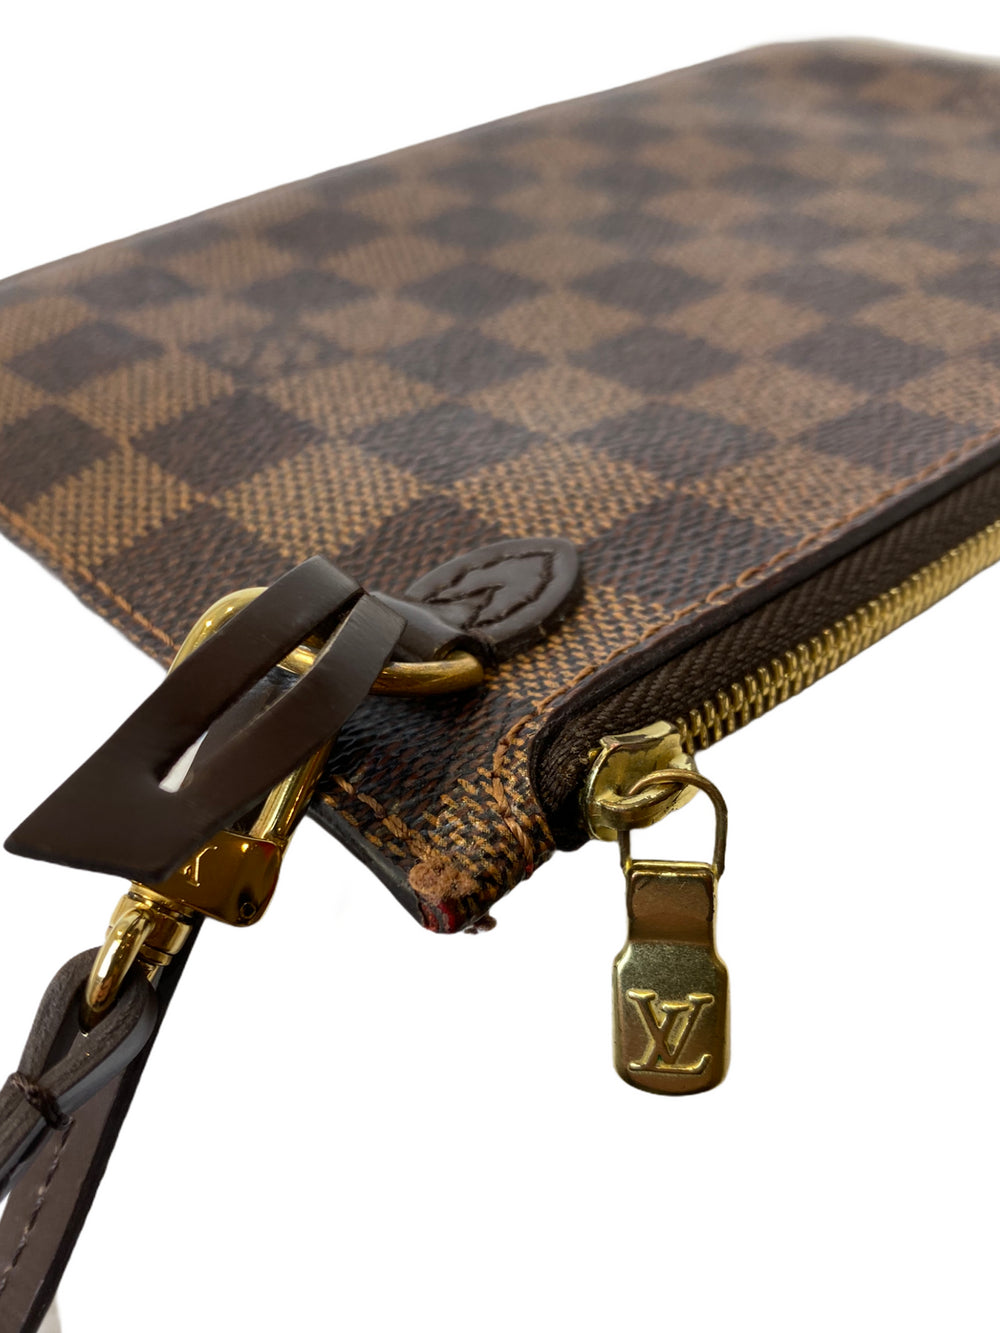 Louis Vuitton Damier Ebene Pochette  - As Seen on Instagram 10/1/21